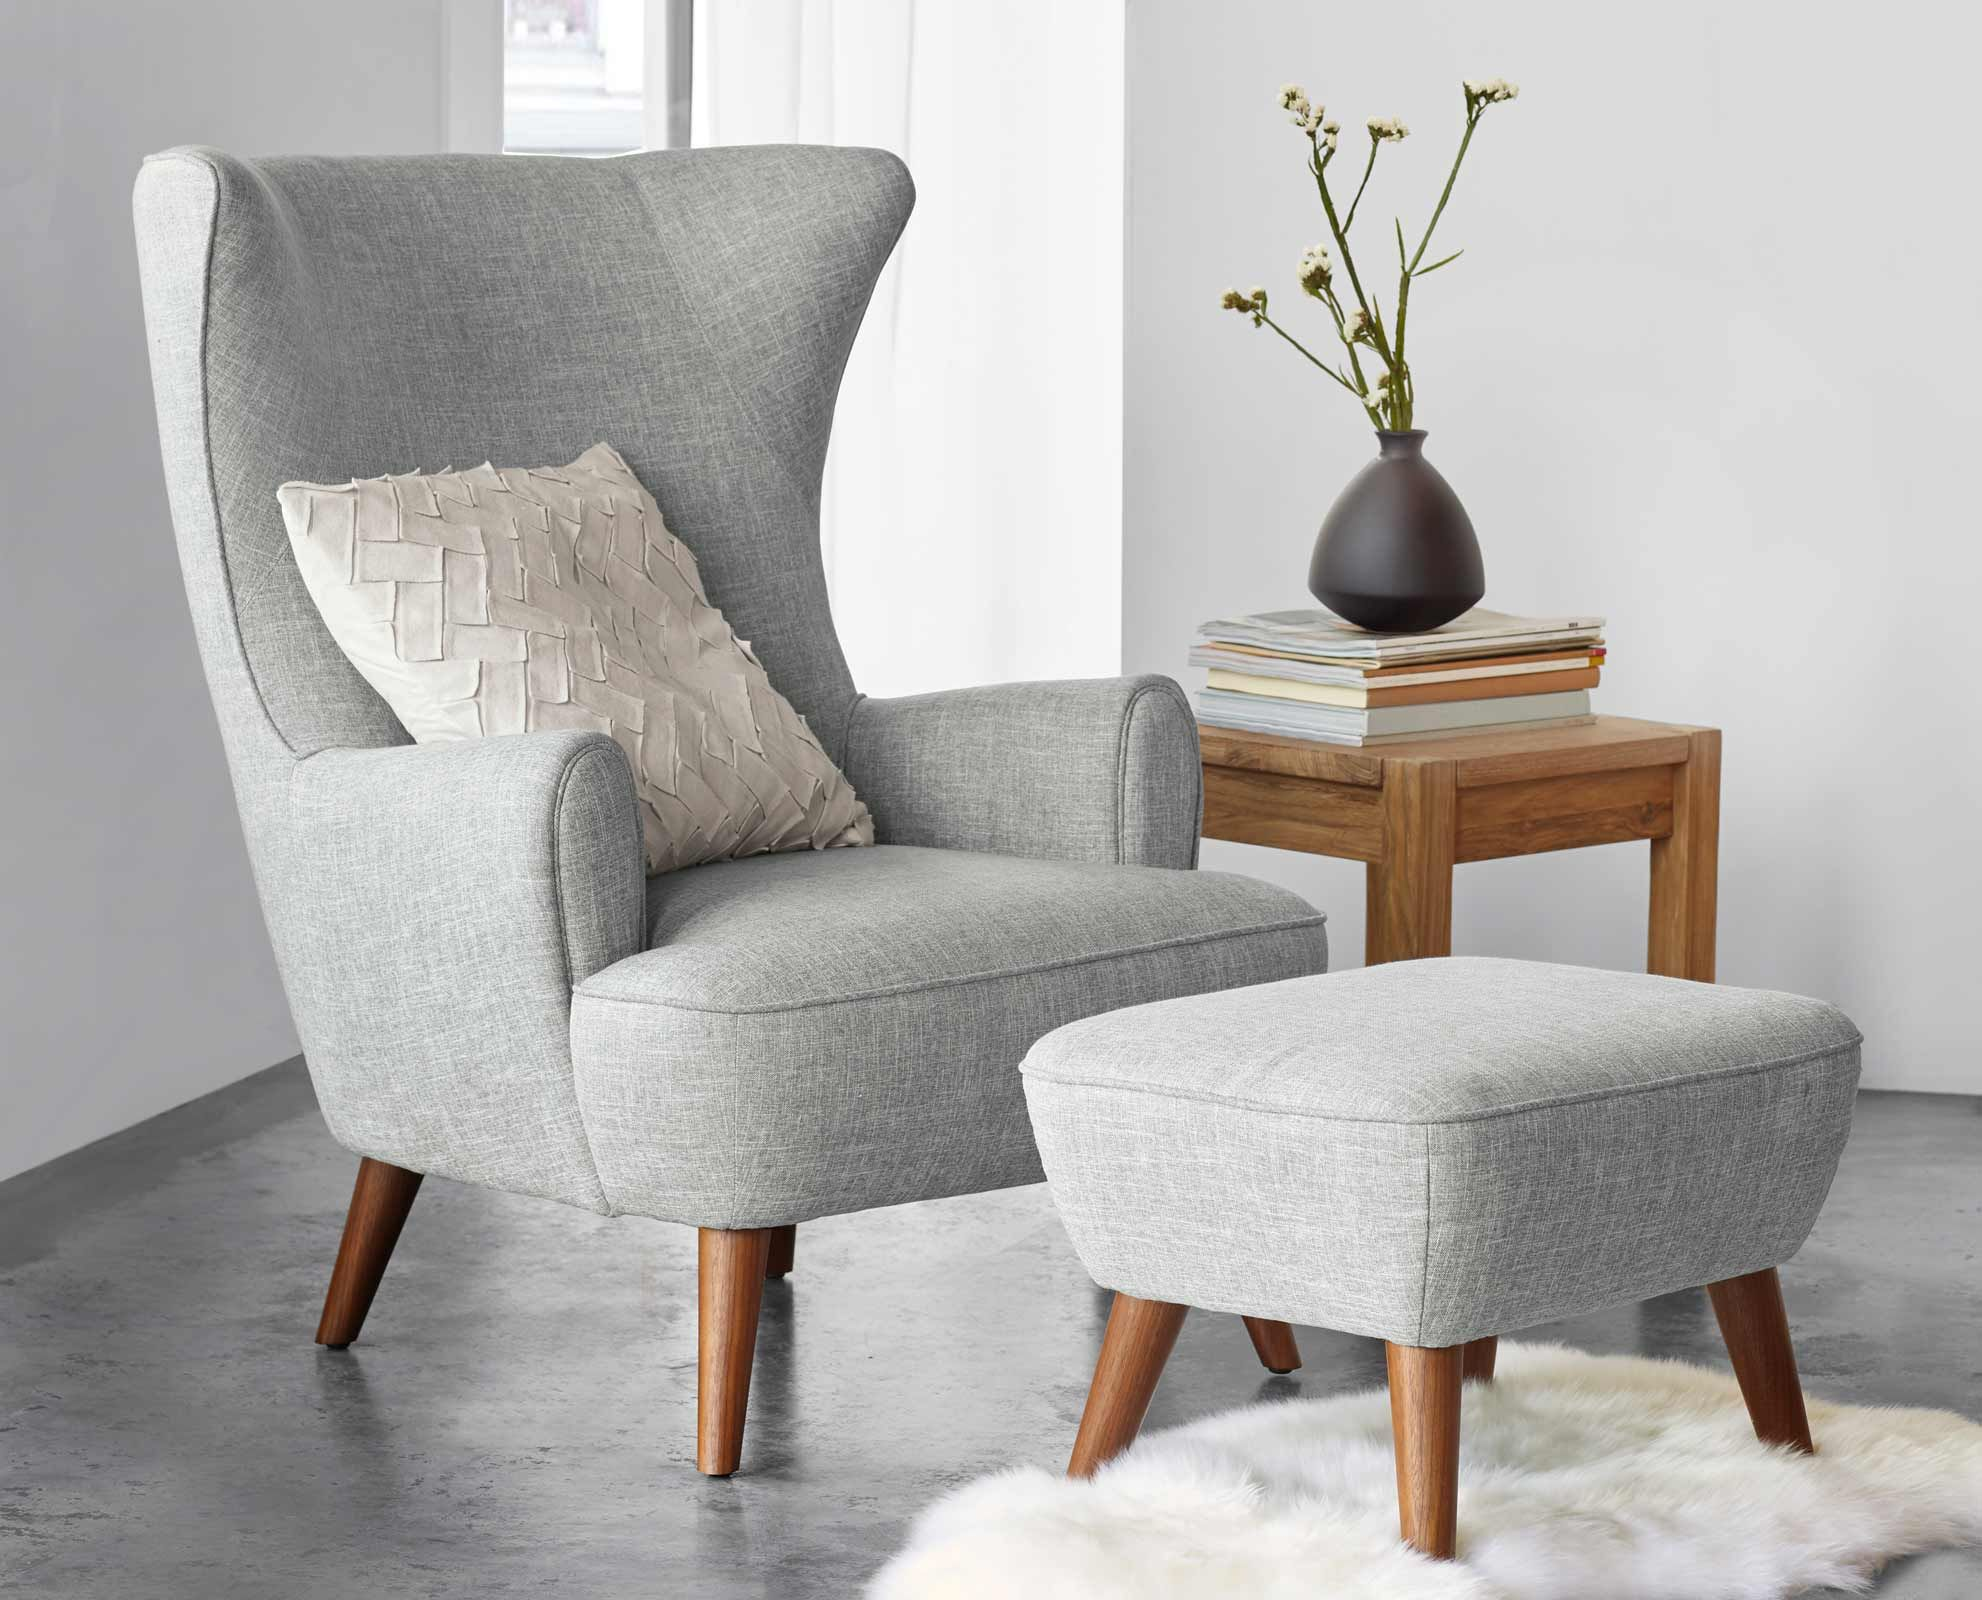 Scandinavian Chair Dania With An Overall Classic Profile The Lines Of The